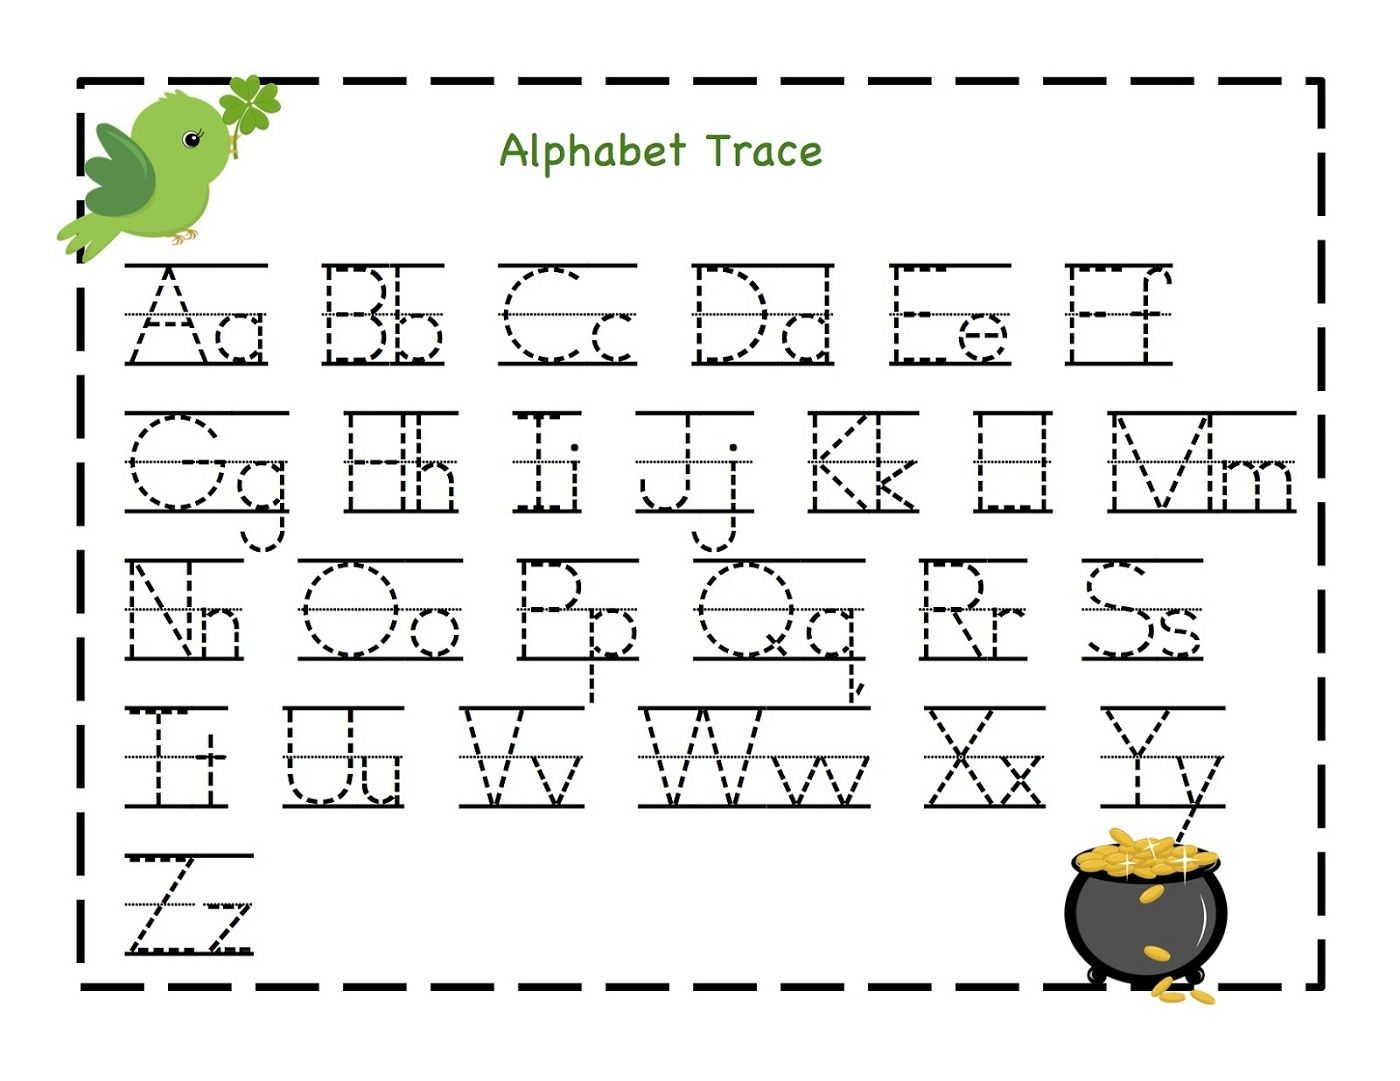 Alphabet tracing worksheets free printable alphabet letters sequencing worksheets tracing letters alphabet